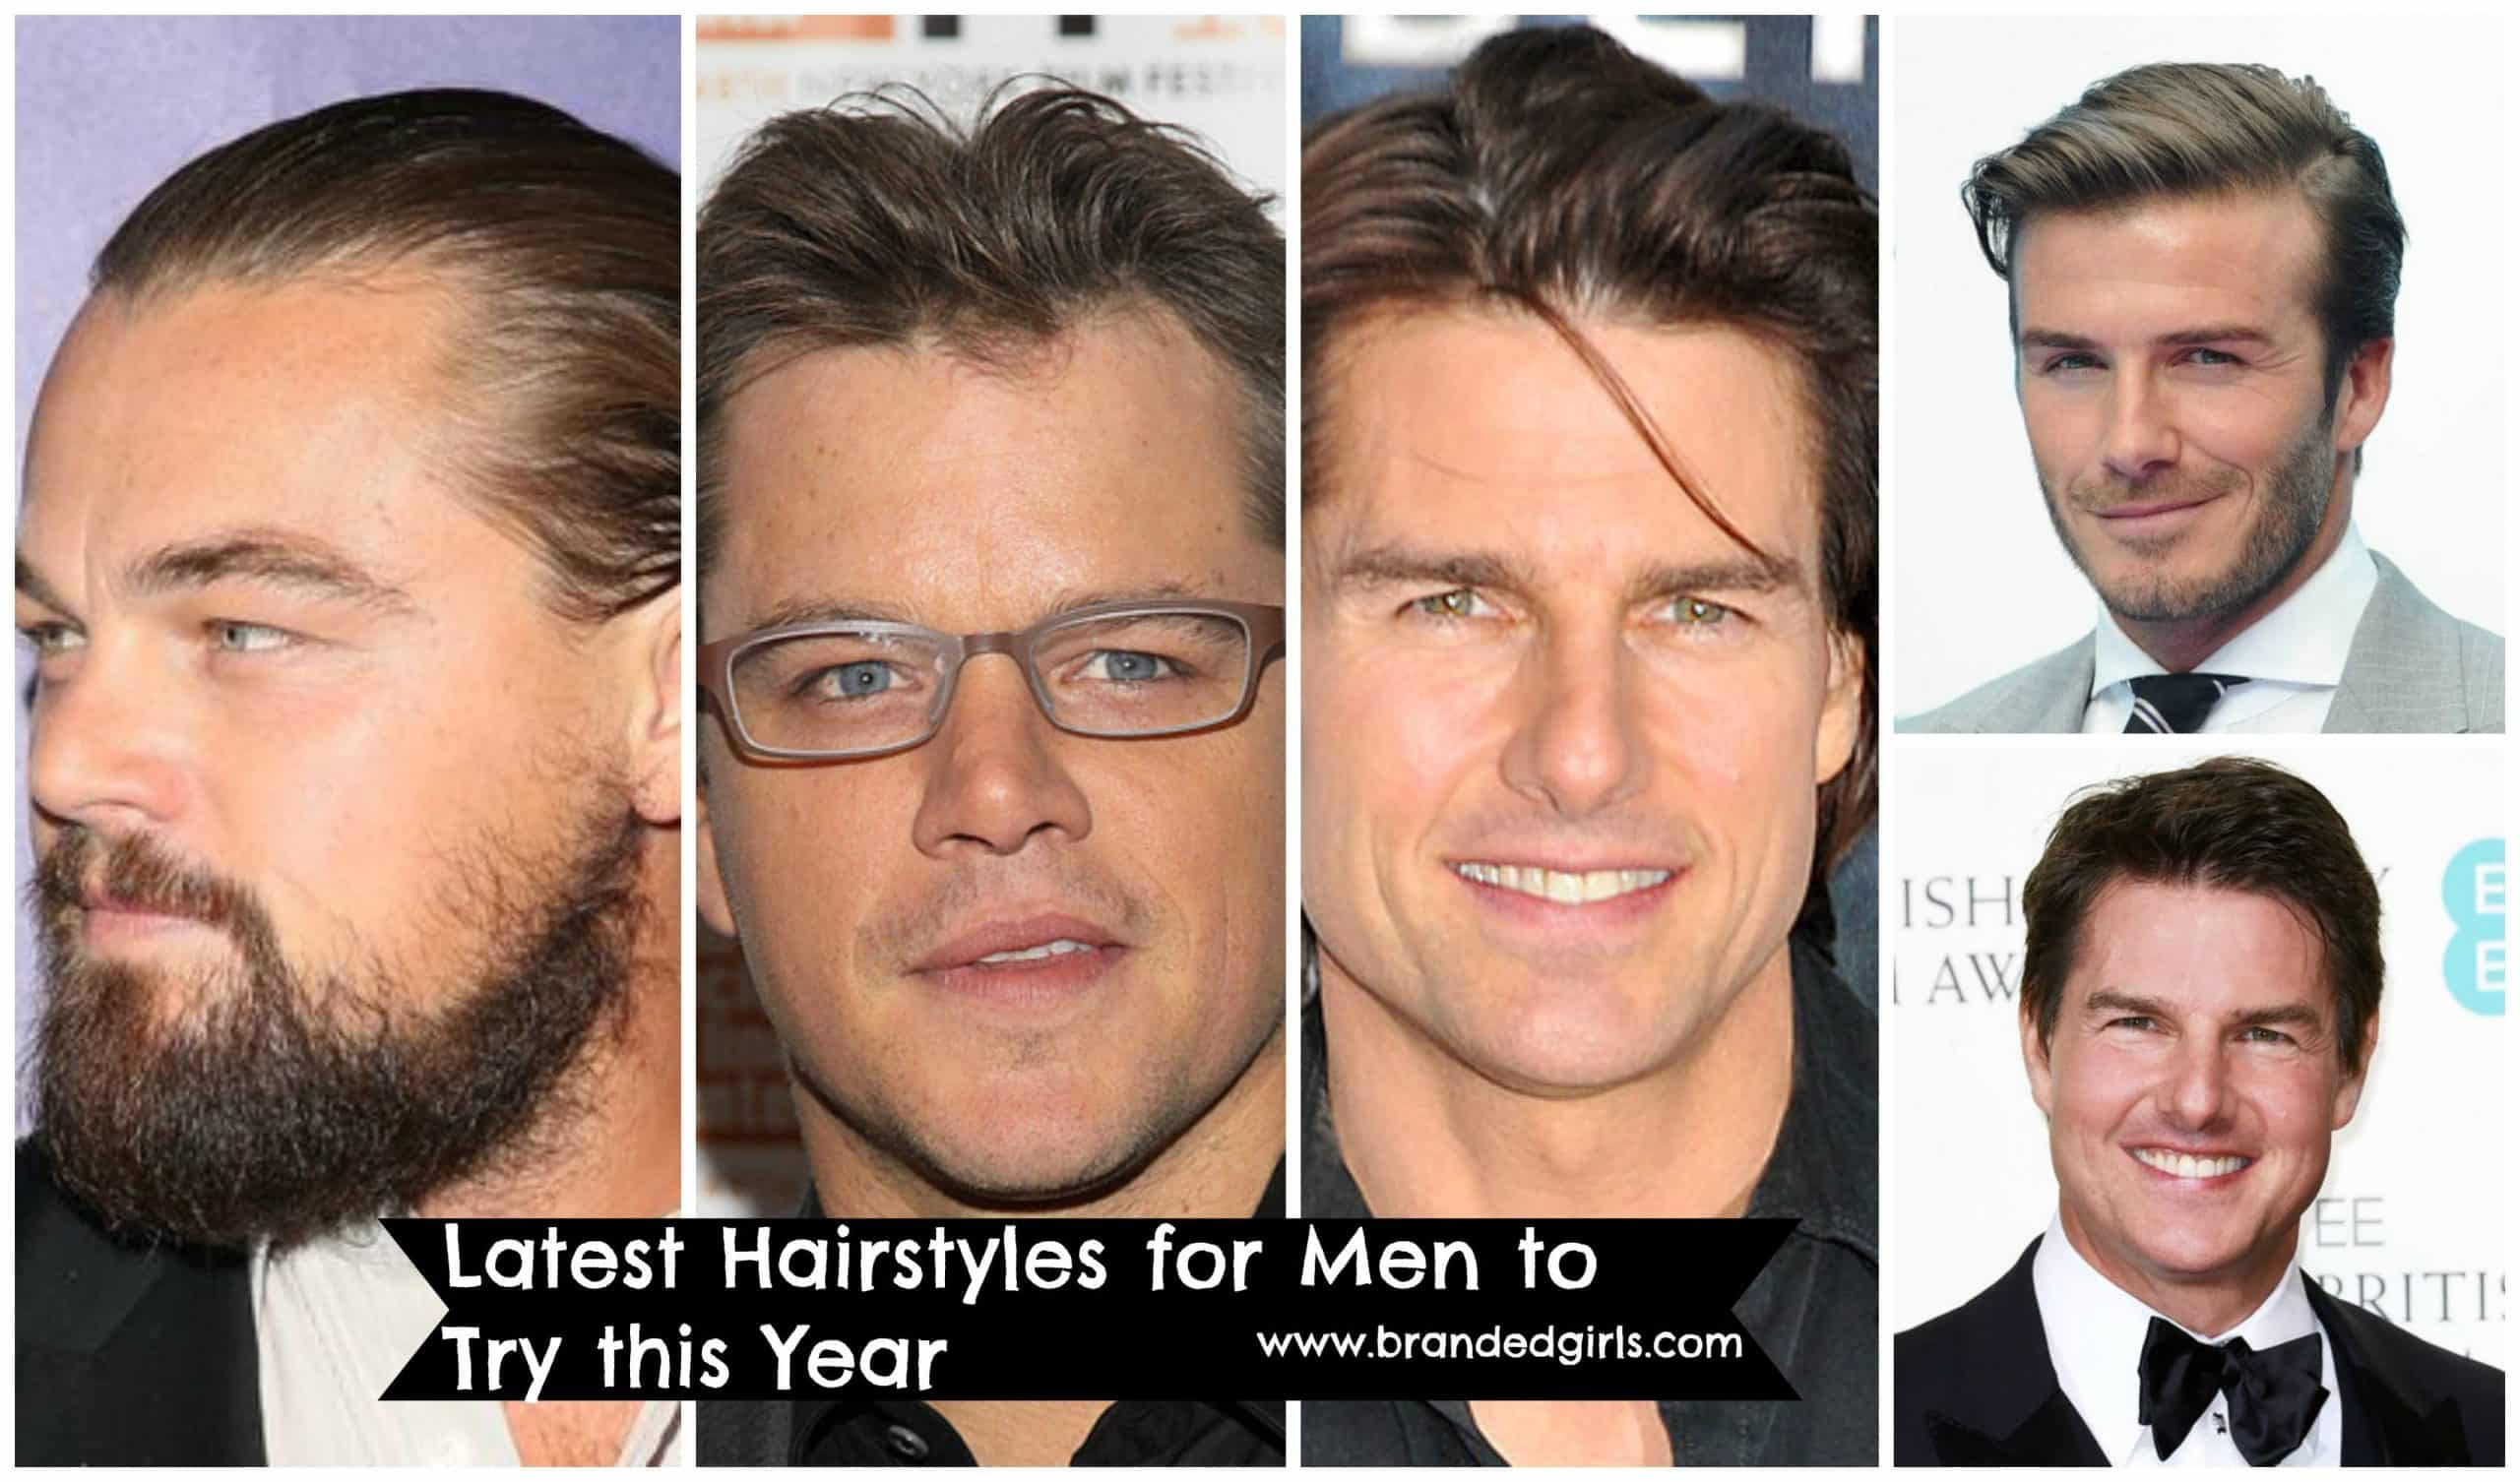 Latest Hairstyles for Men- 25 New Hair Looks to Copy in 2018